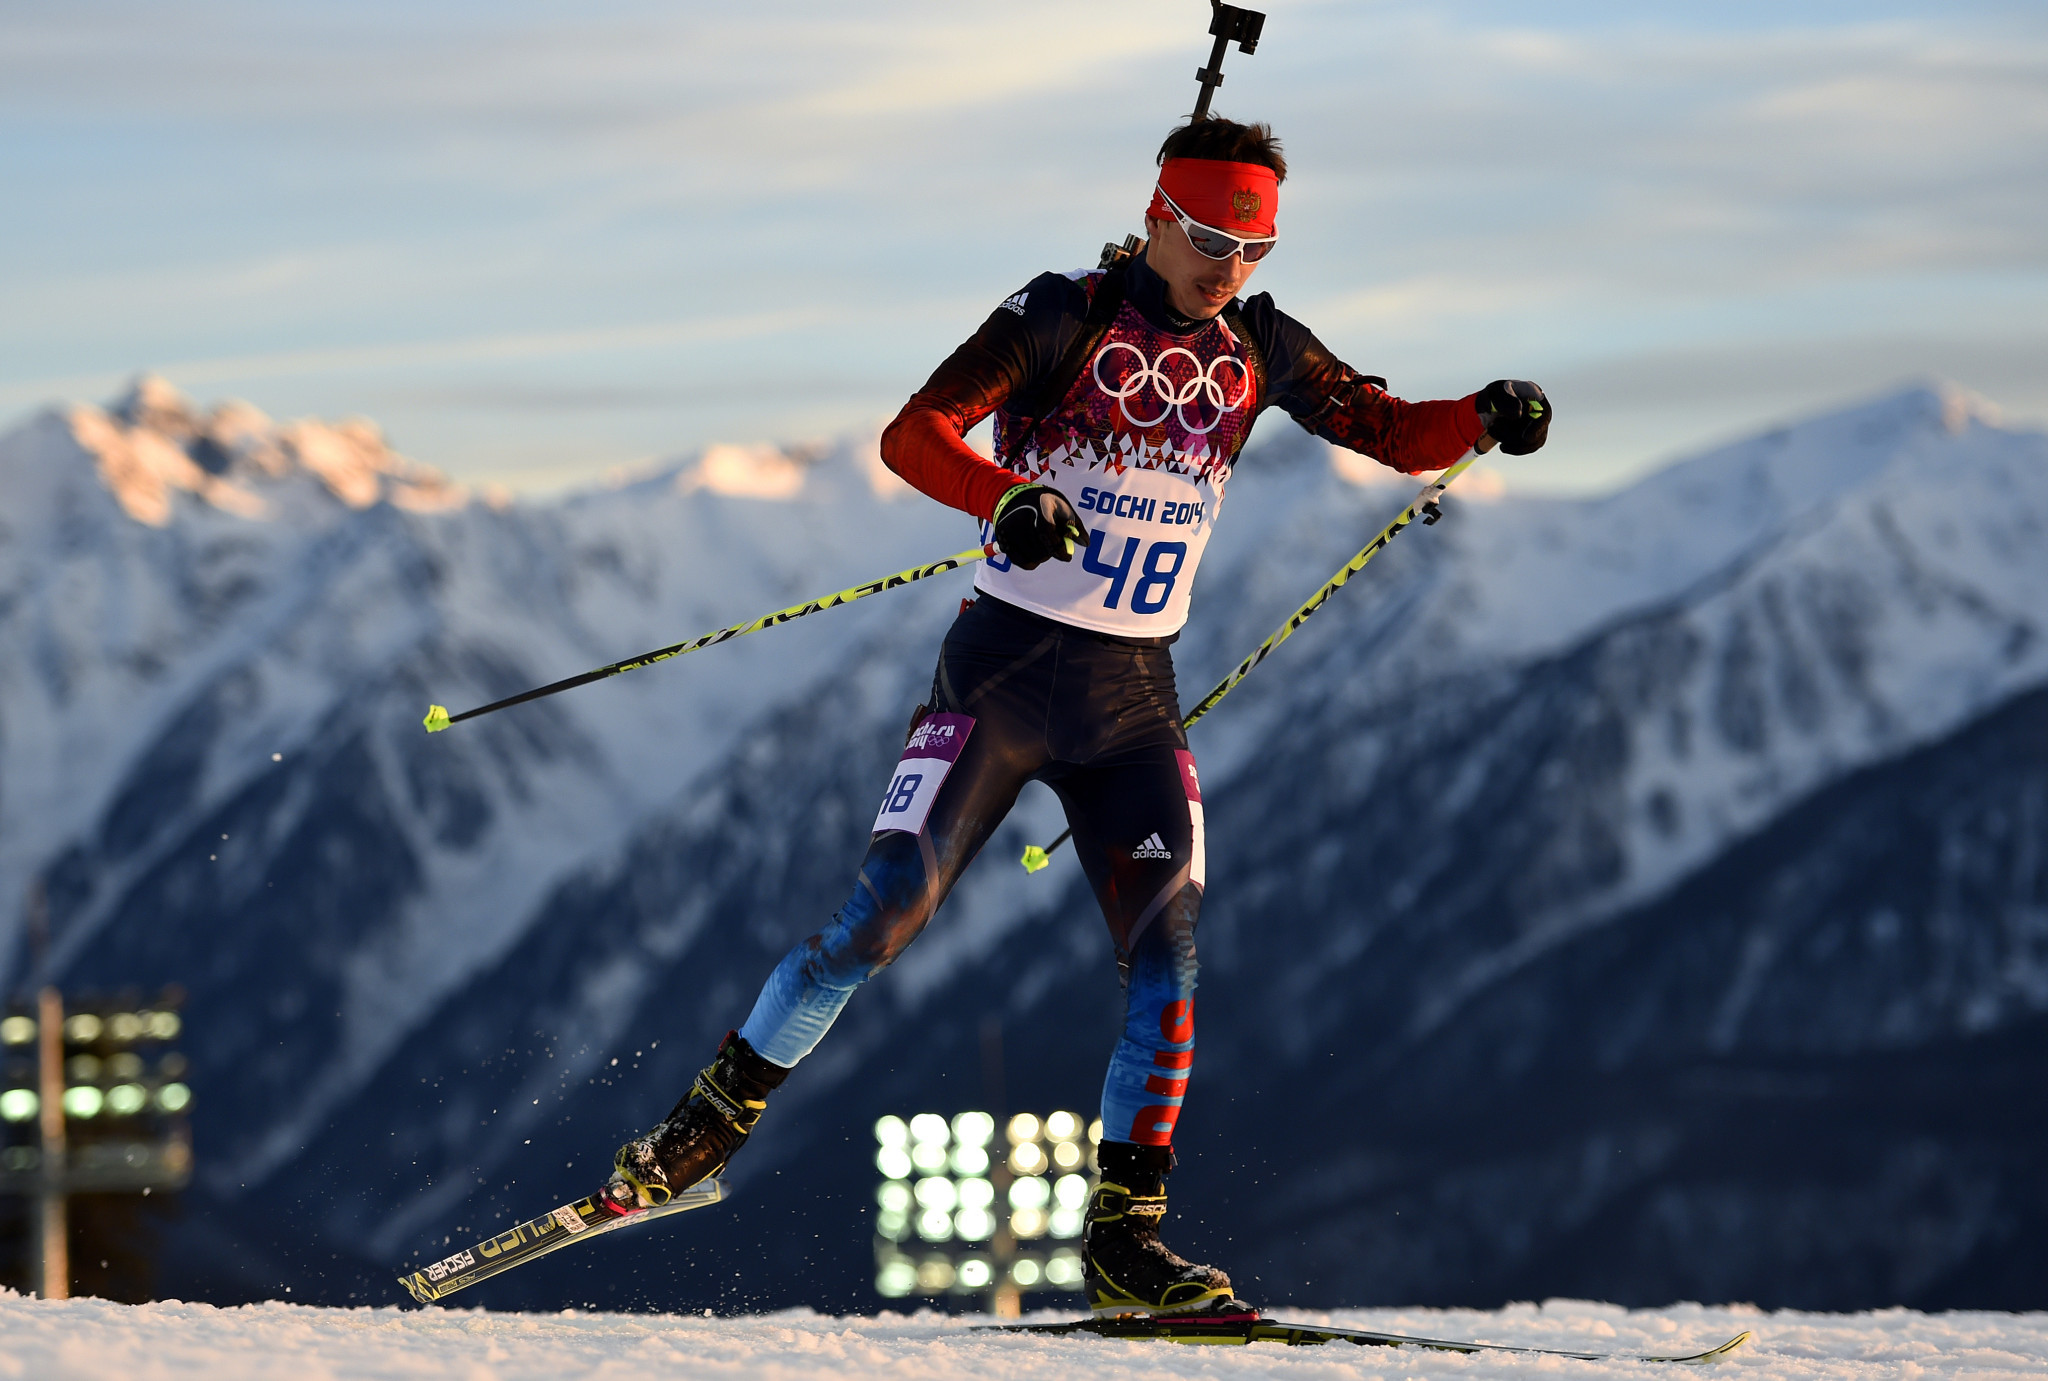 Evgeny Ustyugov earned team relay gold at the Sochi 2014 Winter Olympic Games ©Getty Images